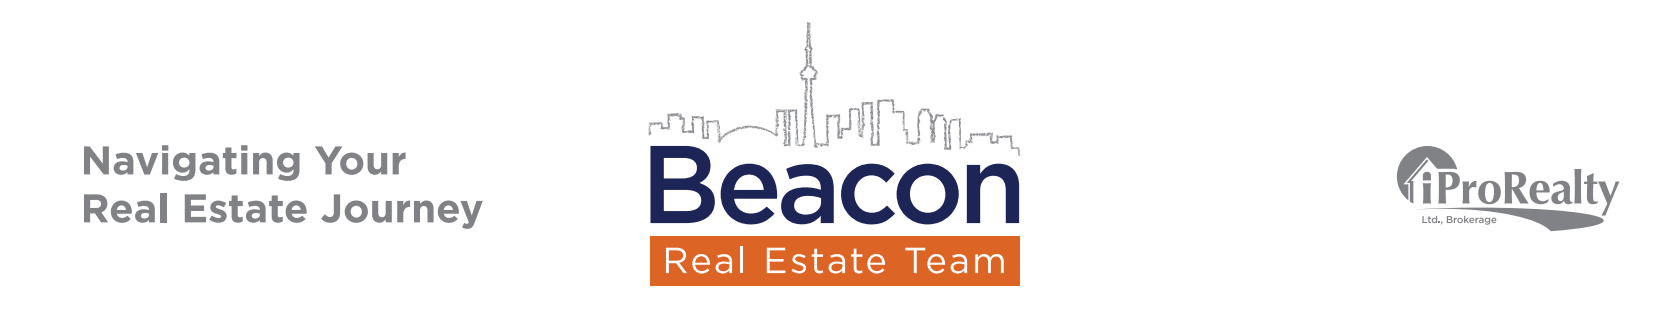 Why Beacon Real Estate Team?